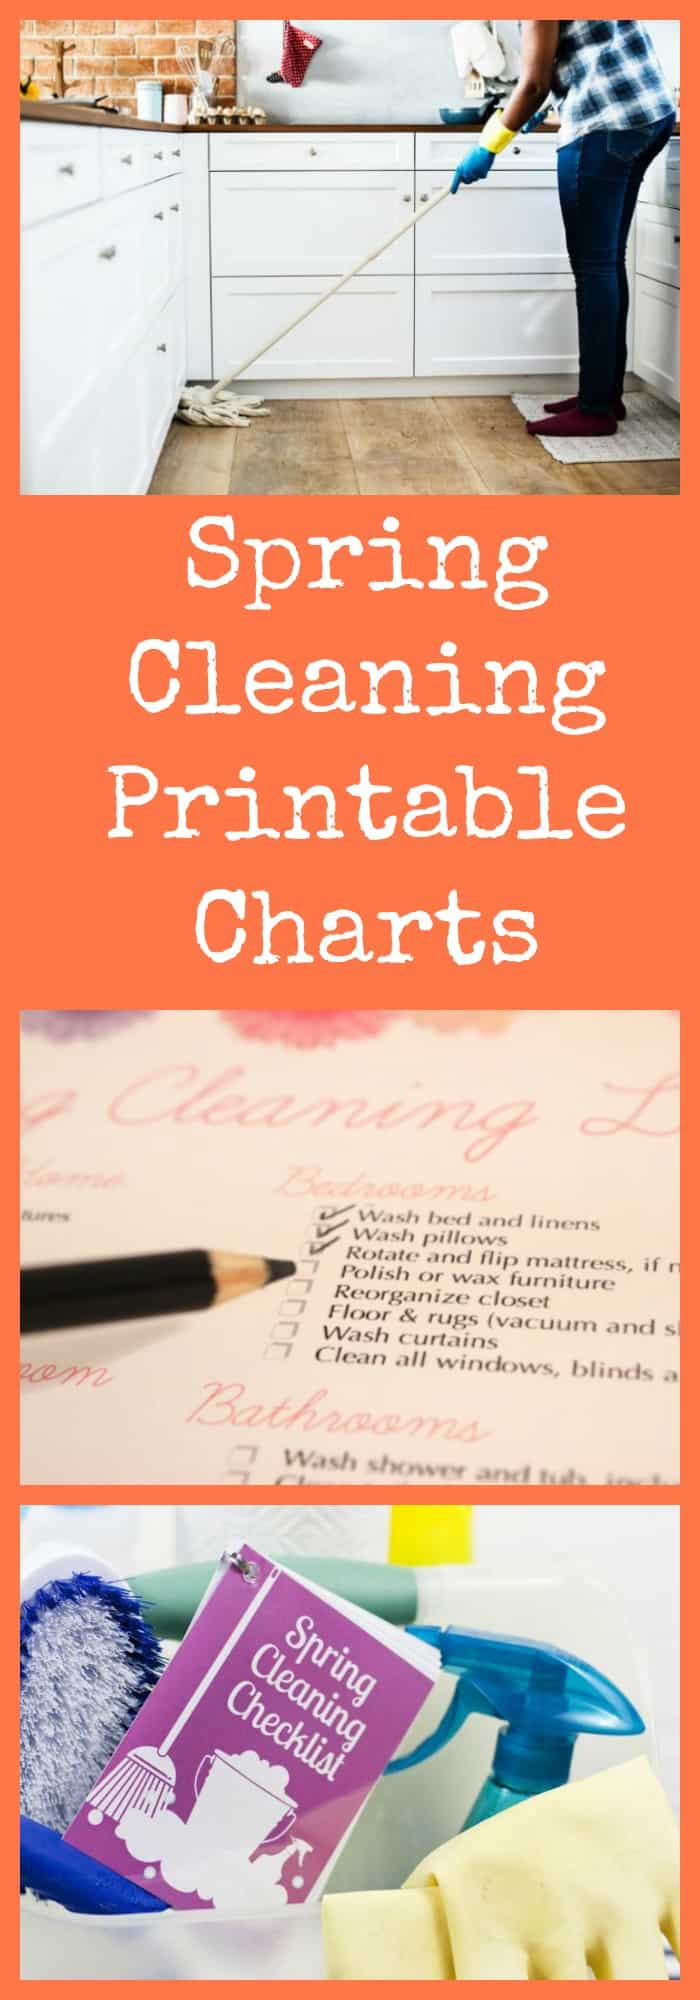 Spring Cleaning Printable Charts